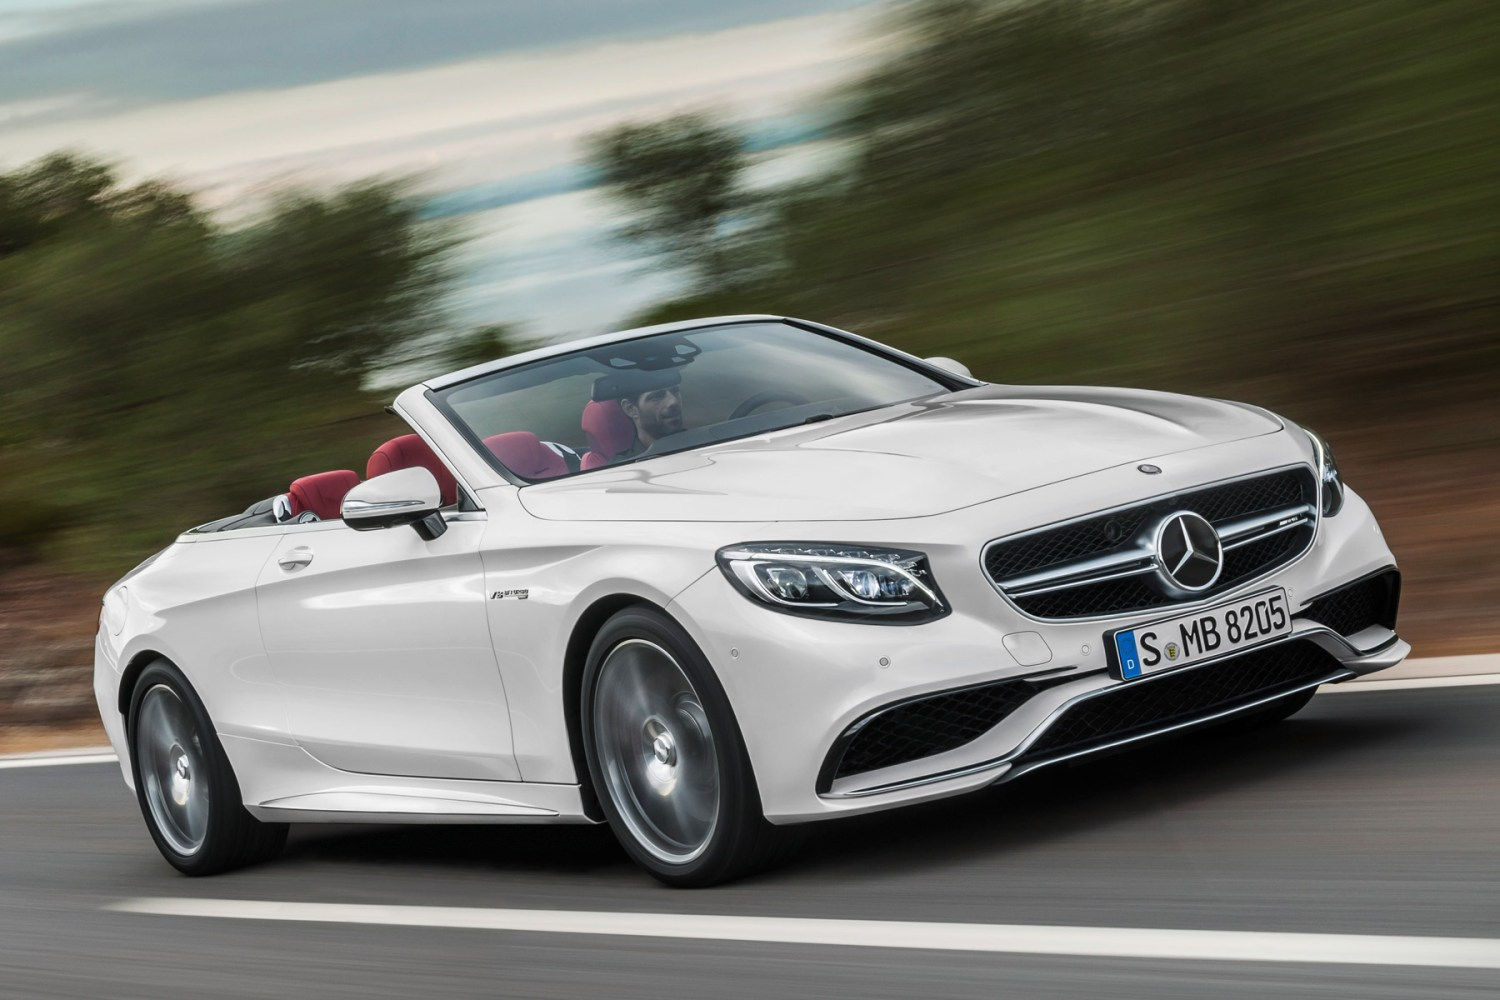 Mercedes-Benz 'Airscarf' heating system BANNED in Germany